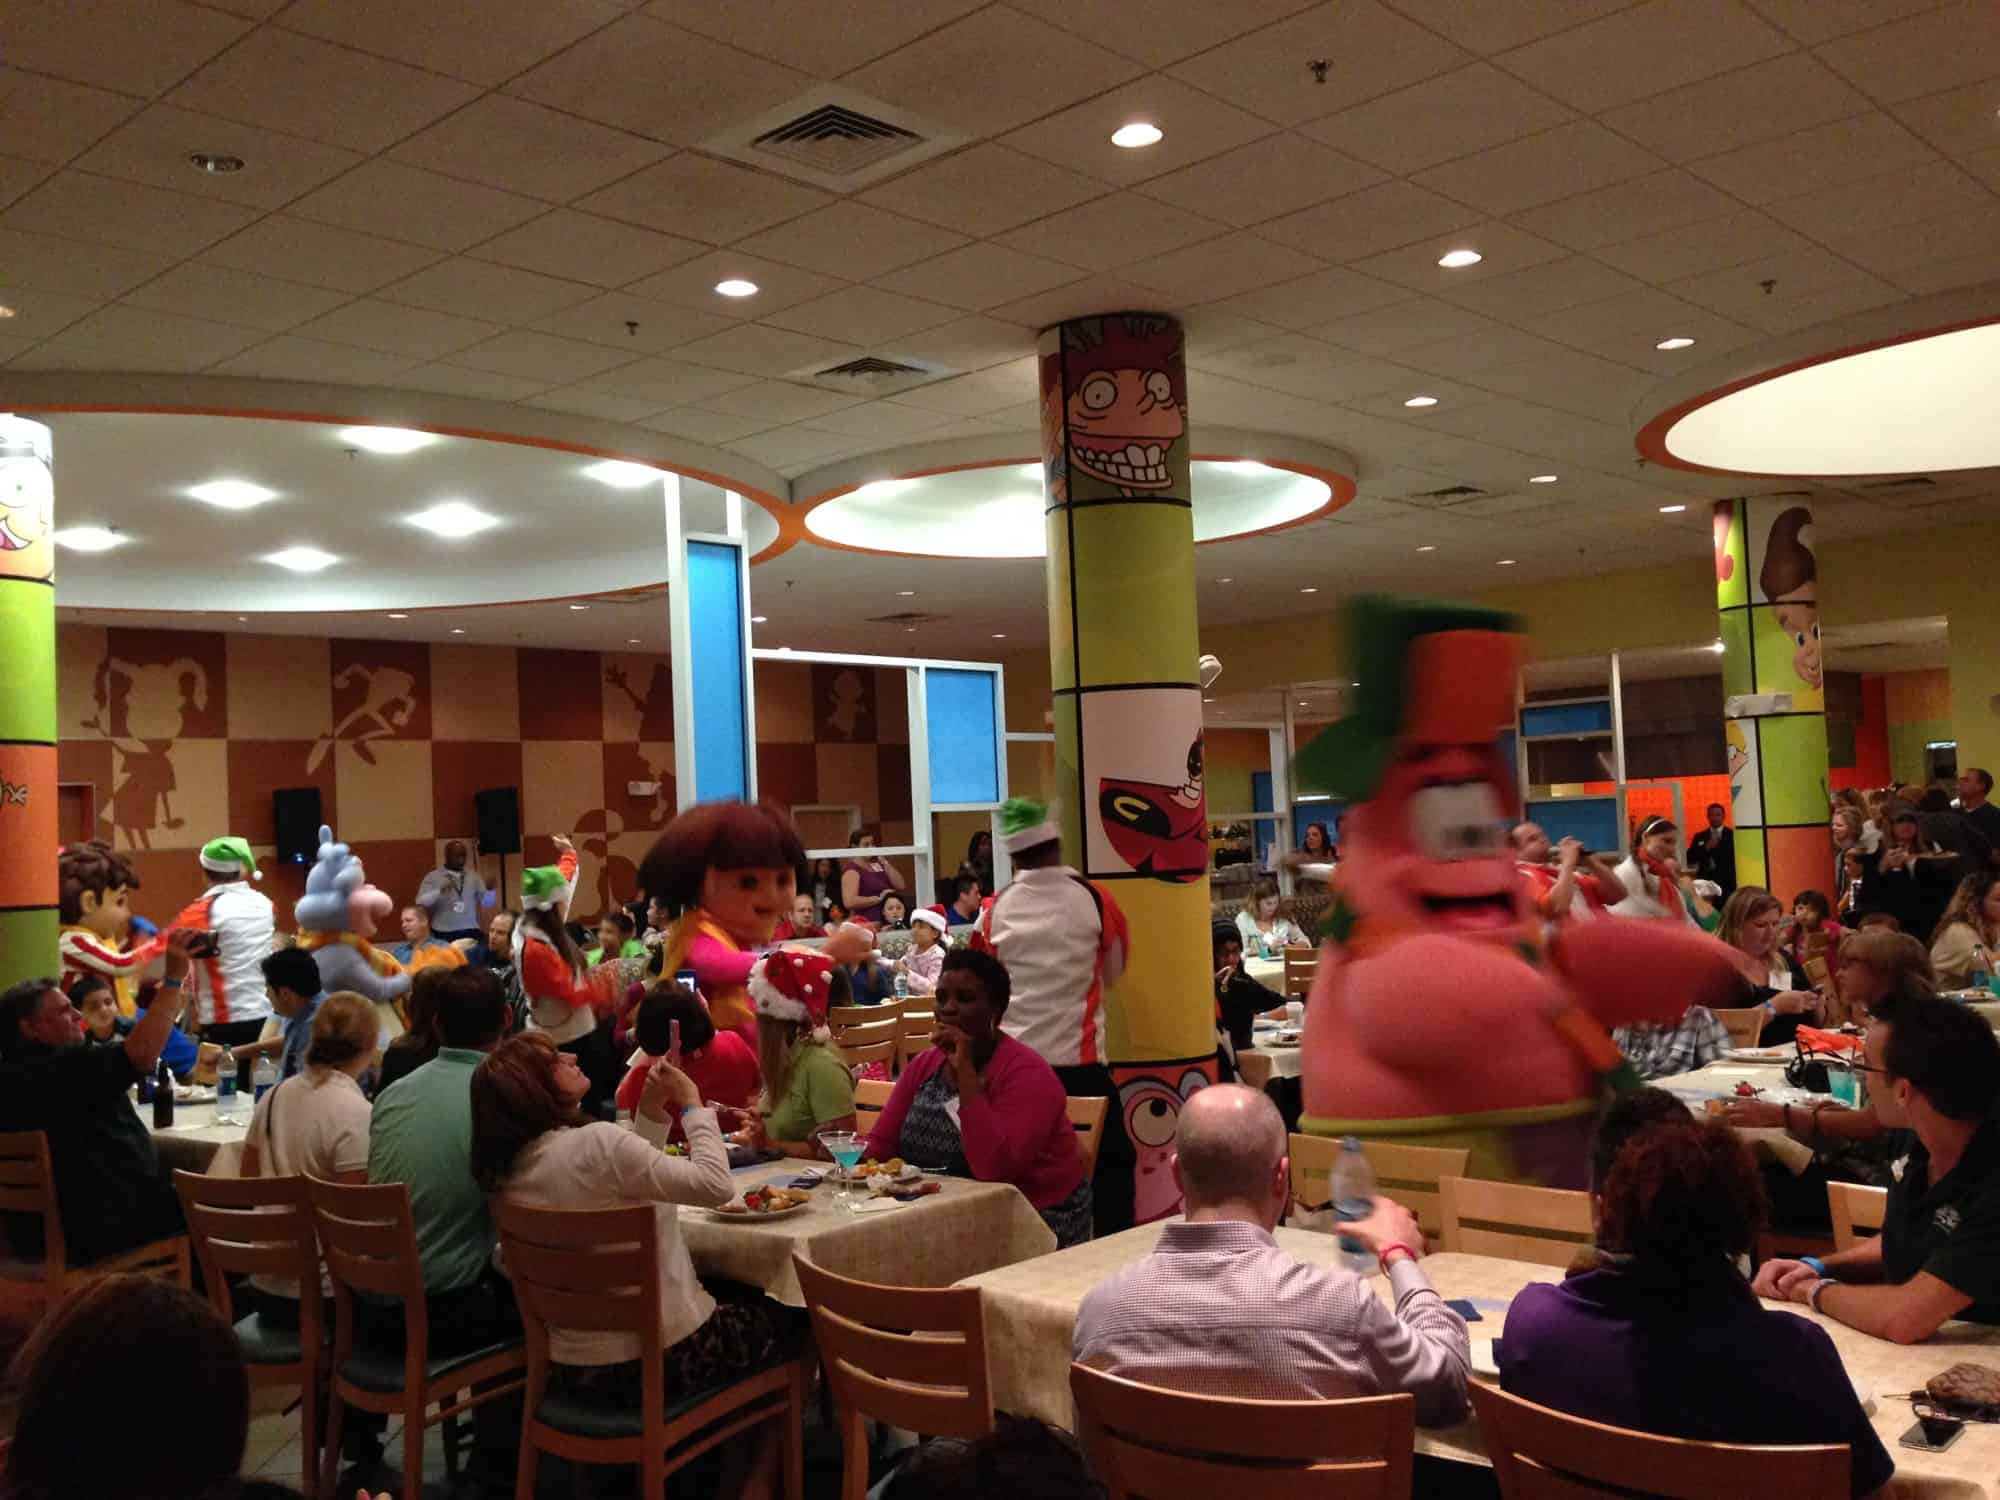 Nick Hotel character dinner